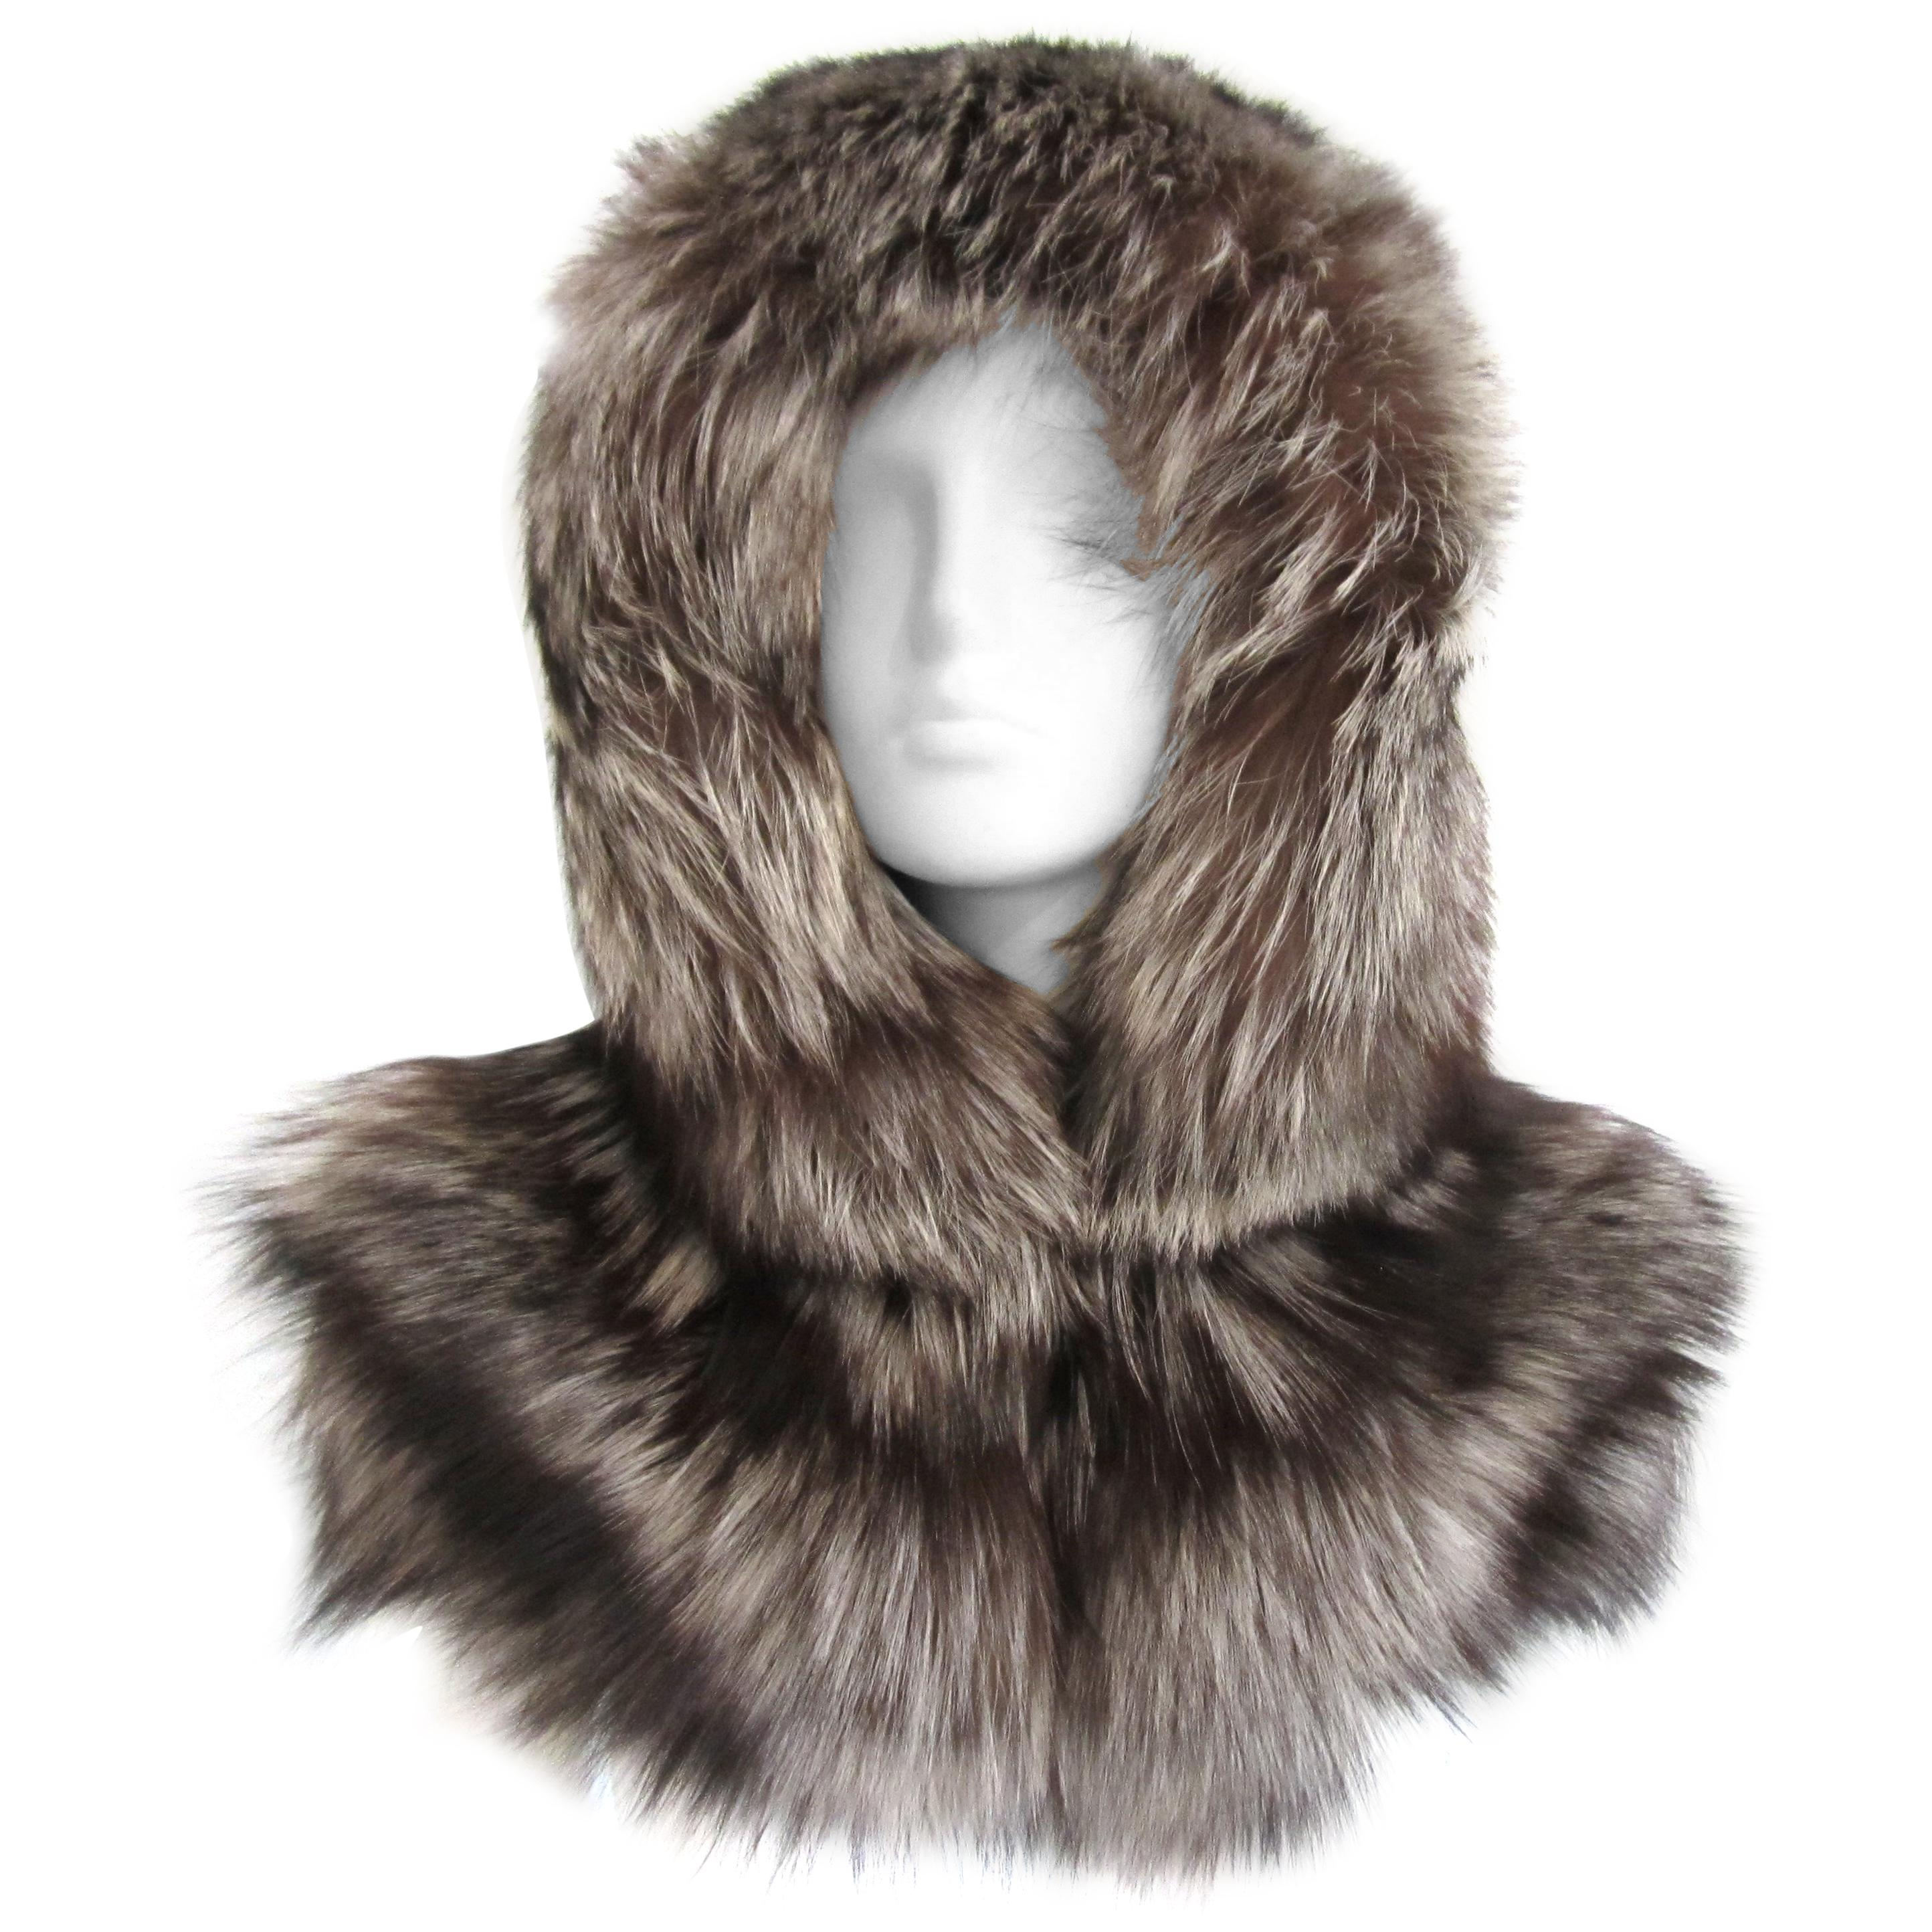 Silver tipped Fox Fur Hooded Shrug Capelet ONE size